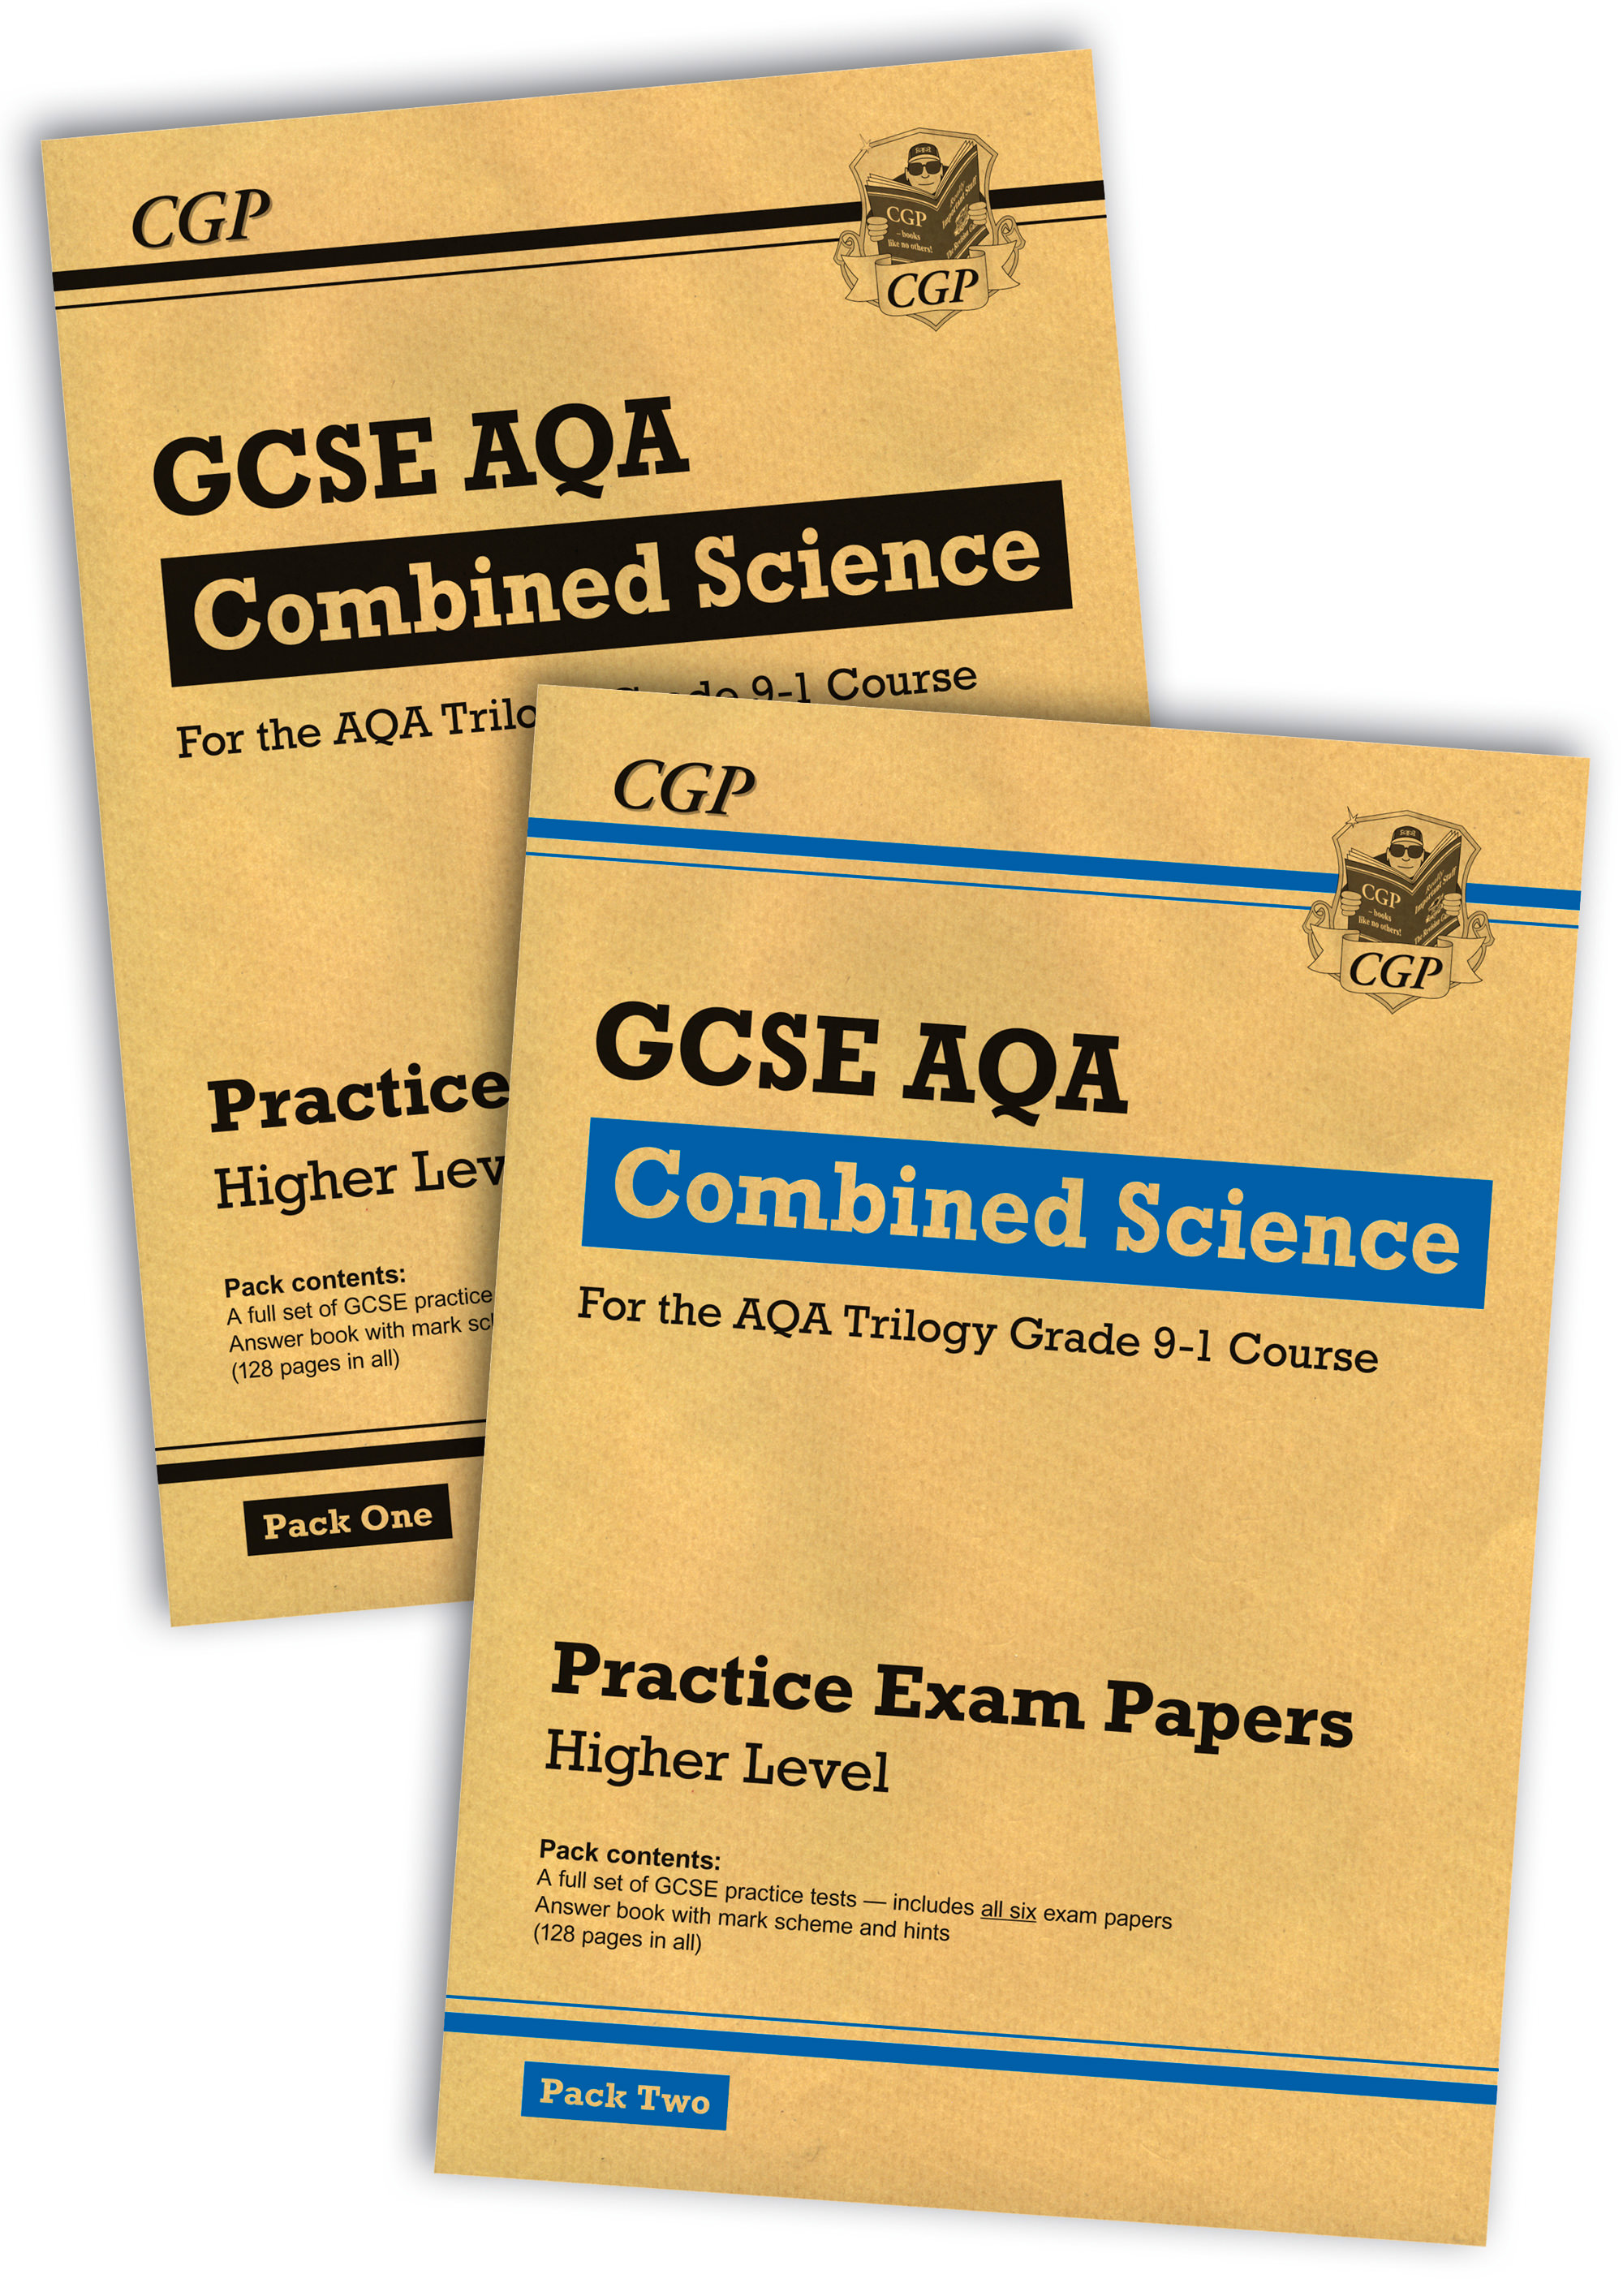 SAHBP41 - Grade 9-1 GCSE Combined Science AQA Practice Papers: Higher Pack 1 & 2 Bundle